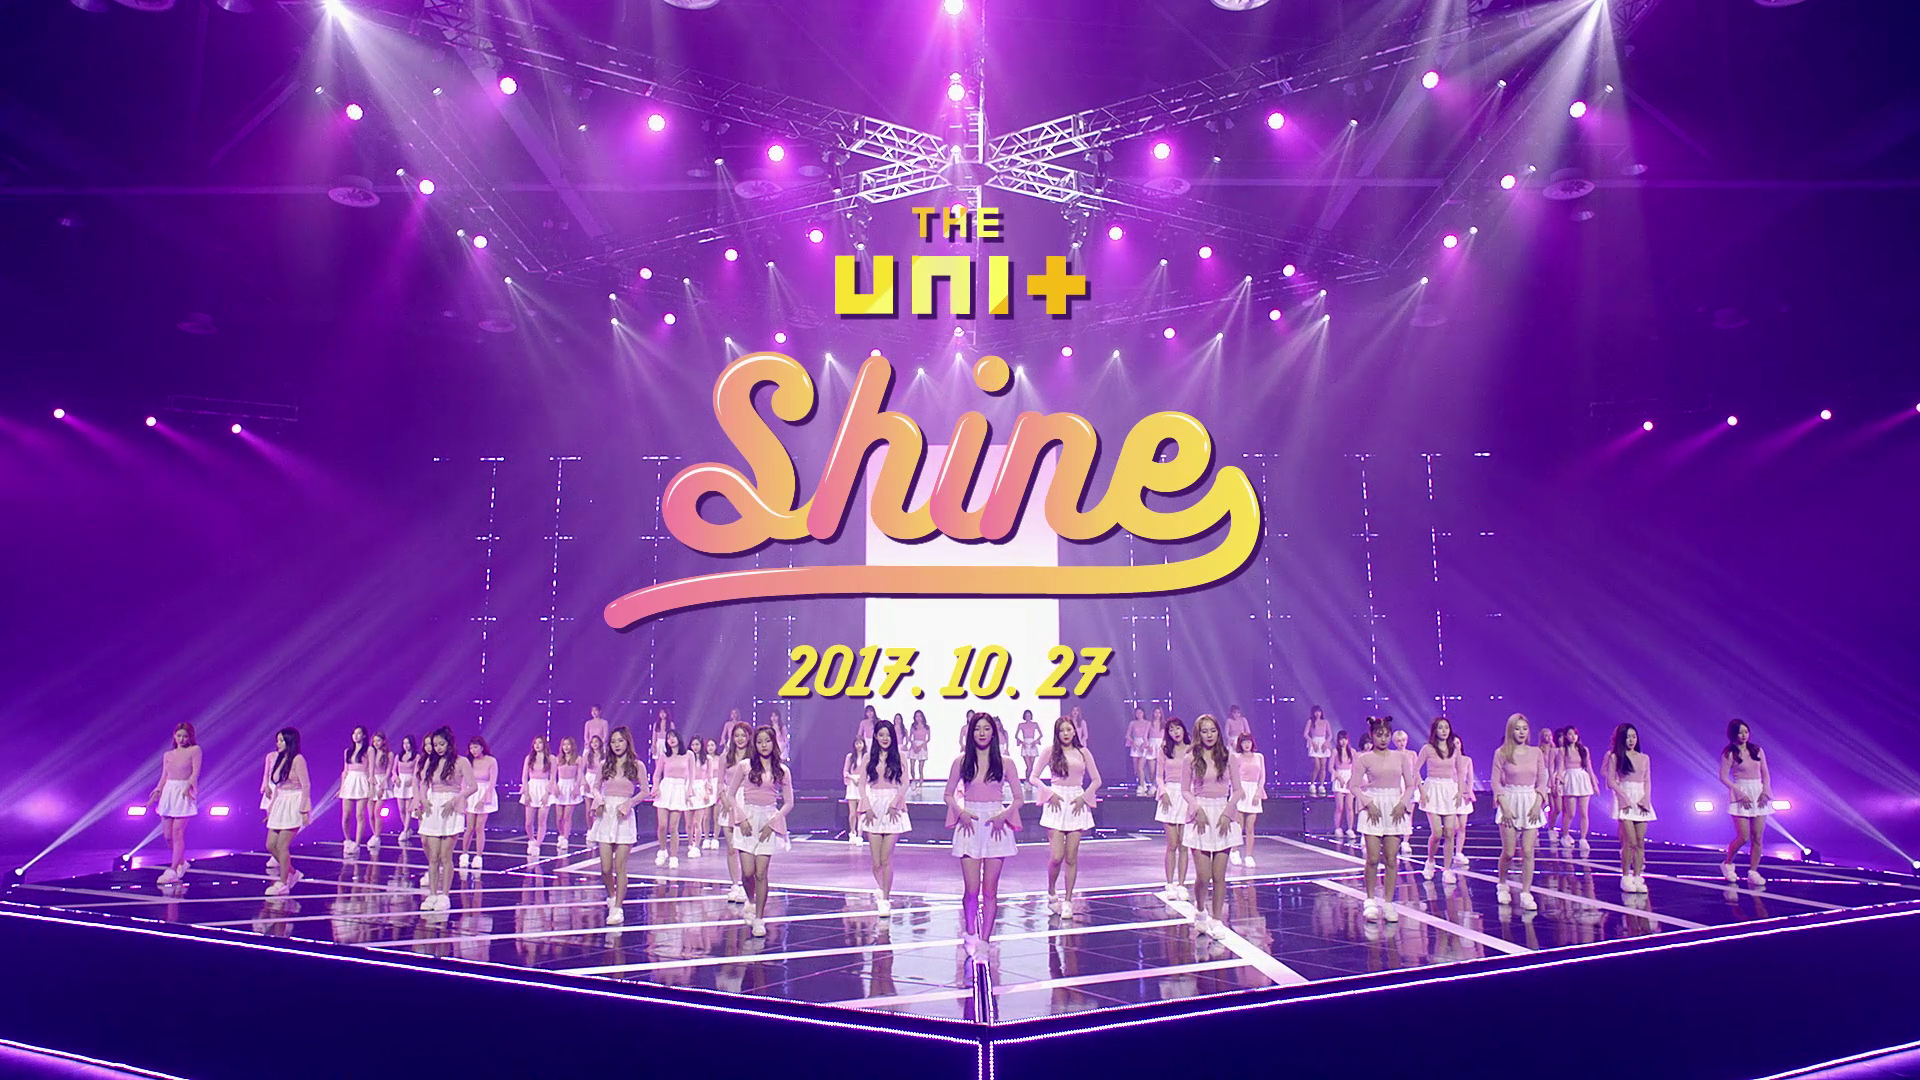 [더 유닛] 여자 미션곡 'SHINE' 뮤직비디오 티저 (The Unit - Teaser of the girls' mission music video, 'SHINE')